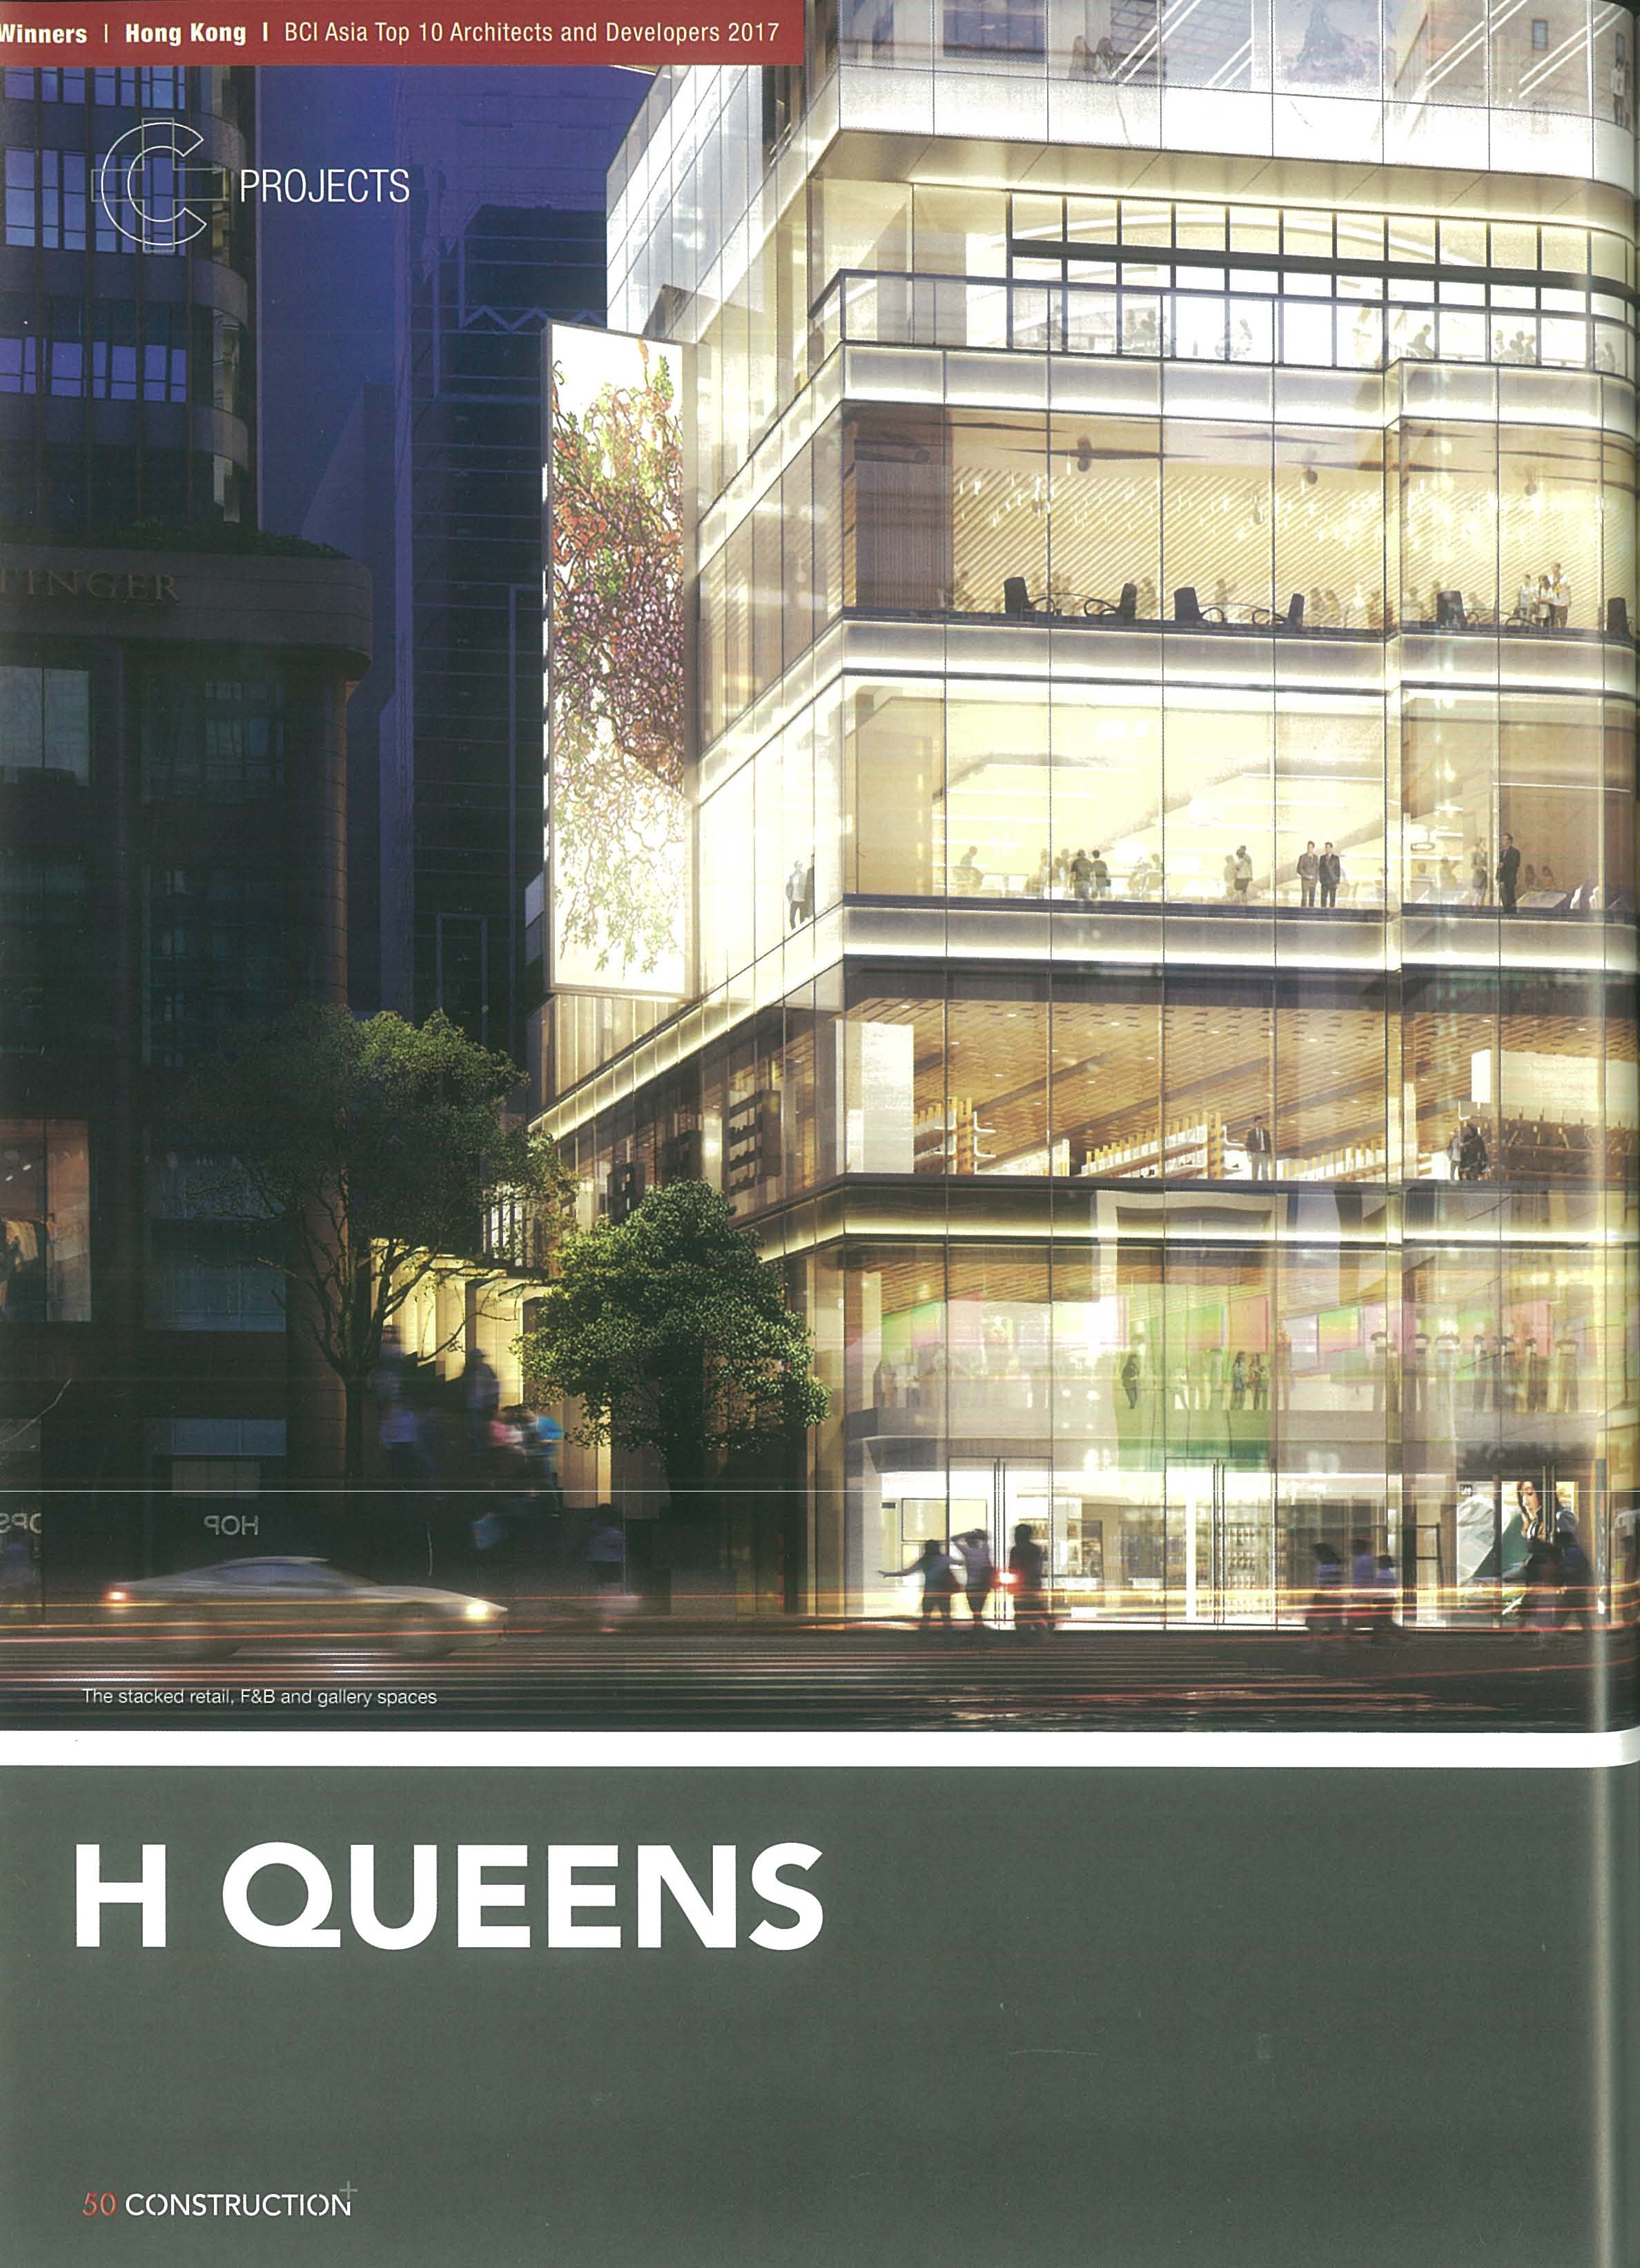 Construction+_Issue 7&8_Oct_Dec 2017_H Queens_Page_2.jpg